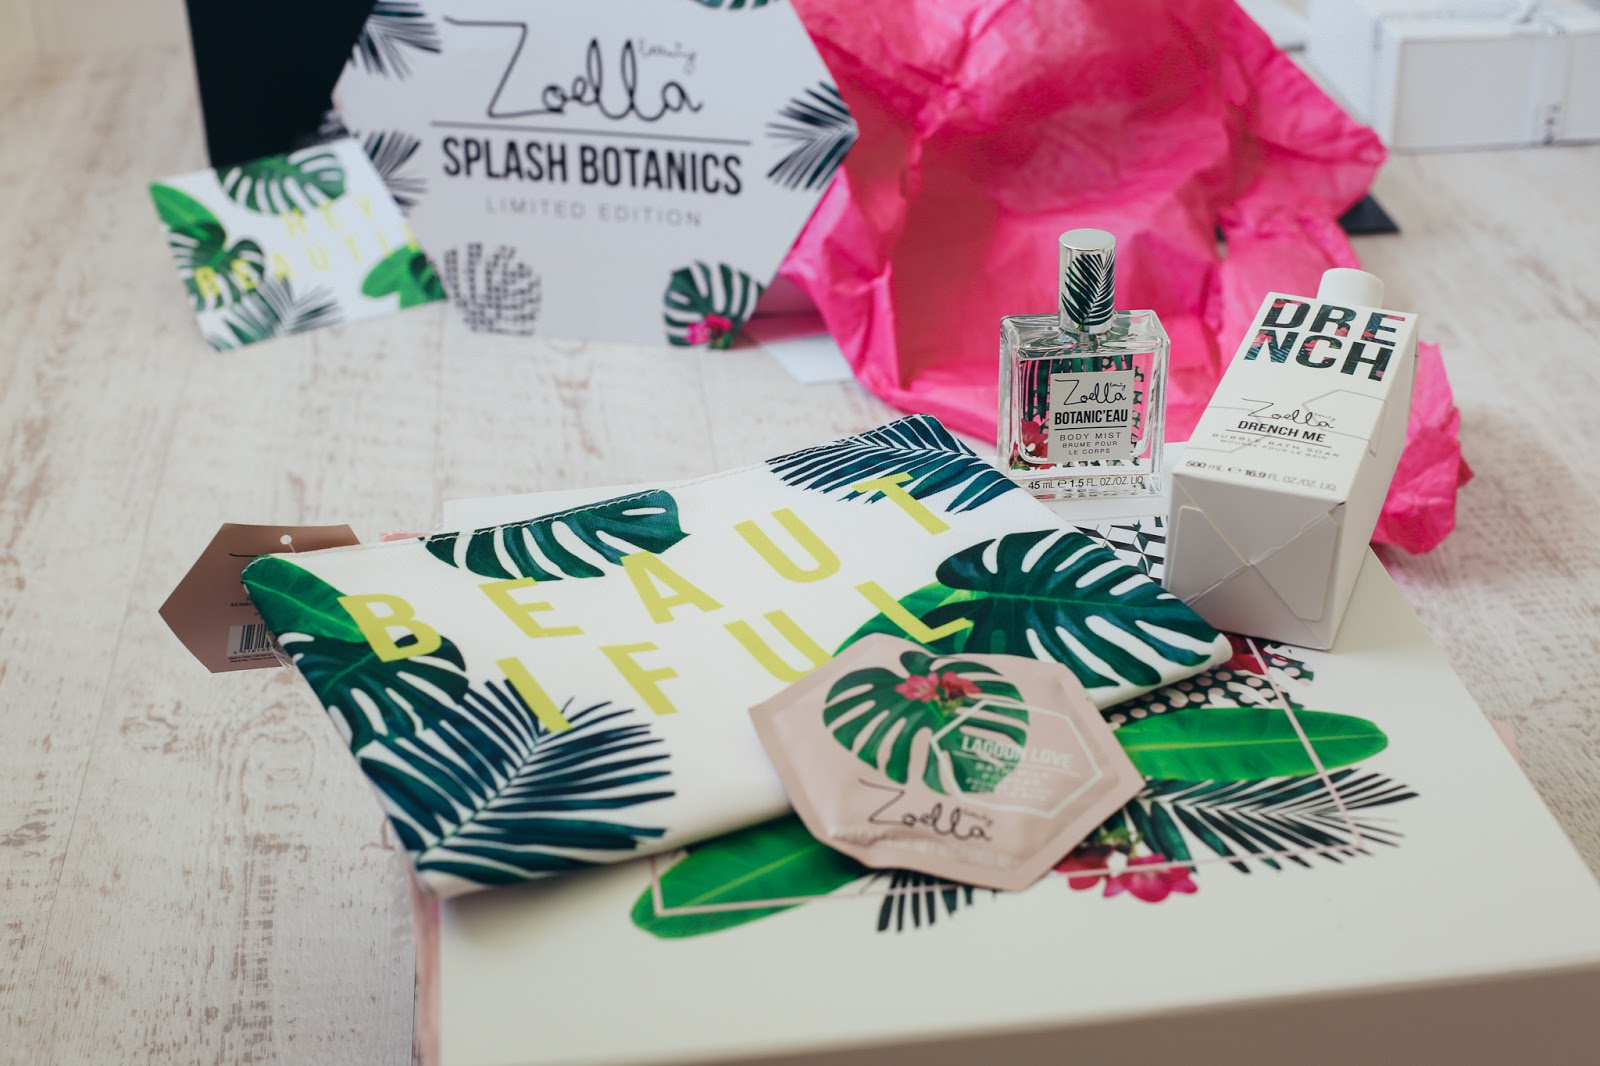 Zoella Splash Botanics Beauty Range